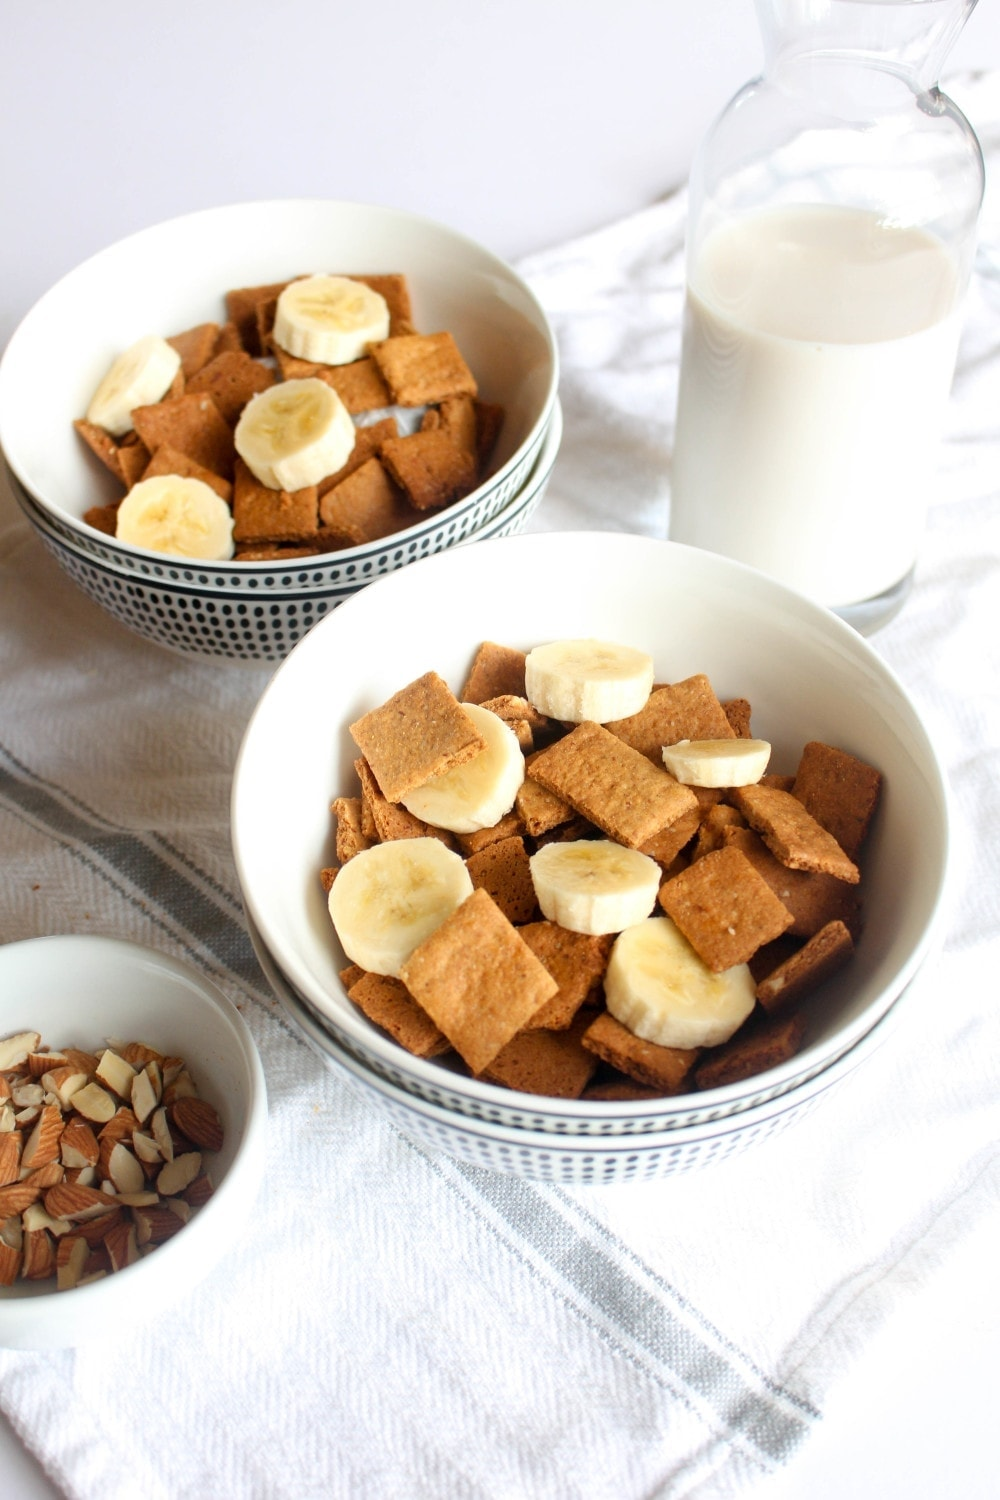 Guess what!?!? Homemade cereal is EASY! Oh and delicious.